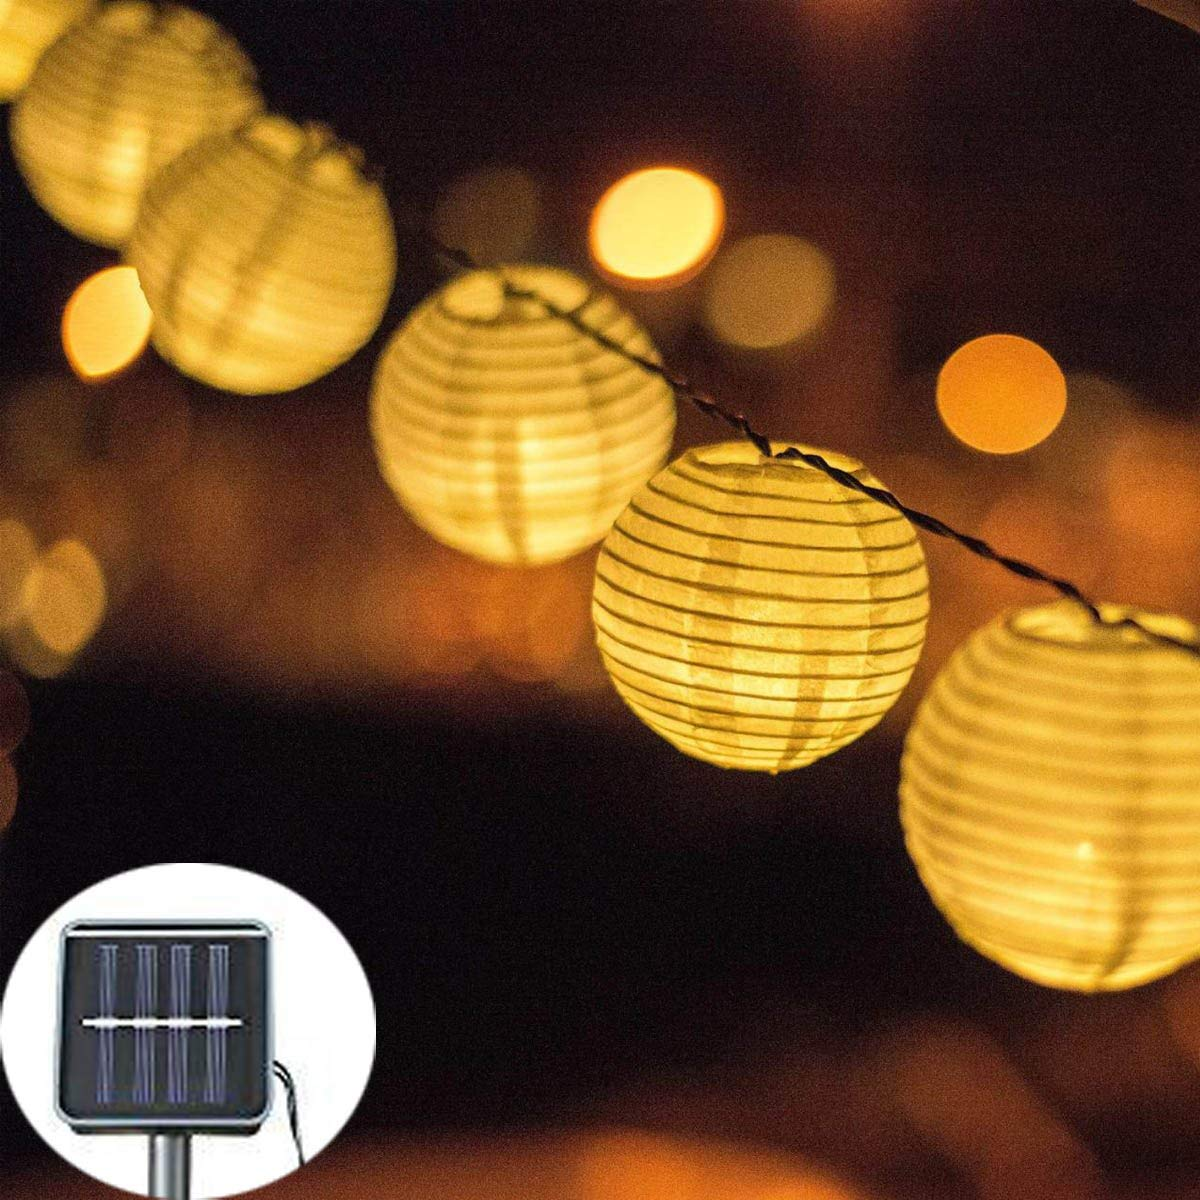 ibdone Solar LED Lanterns String Lights, 16.4Ft 5M 20 LED Waterproof Outdoor Decorative Stringed LED String Lights Lanterns for Party,Christmas,Garden,Patio,Halloween, Decoration (Warm White)